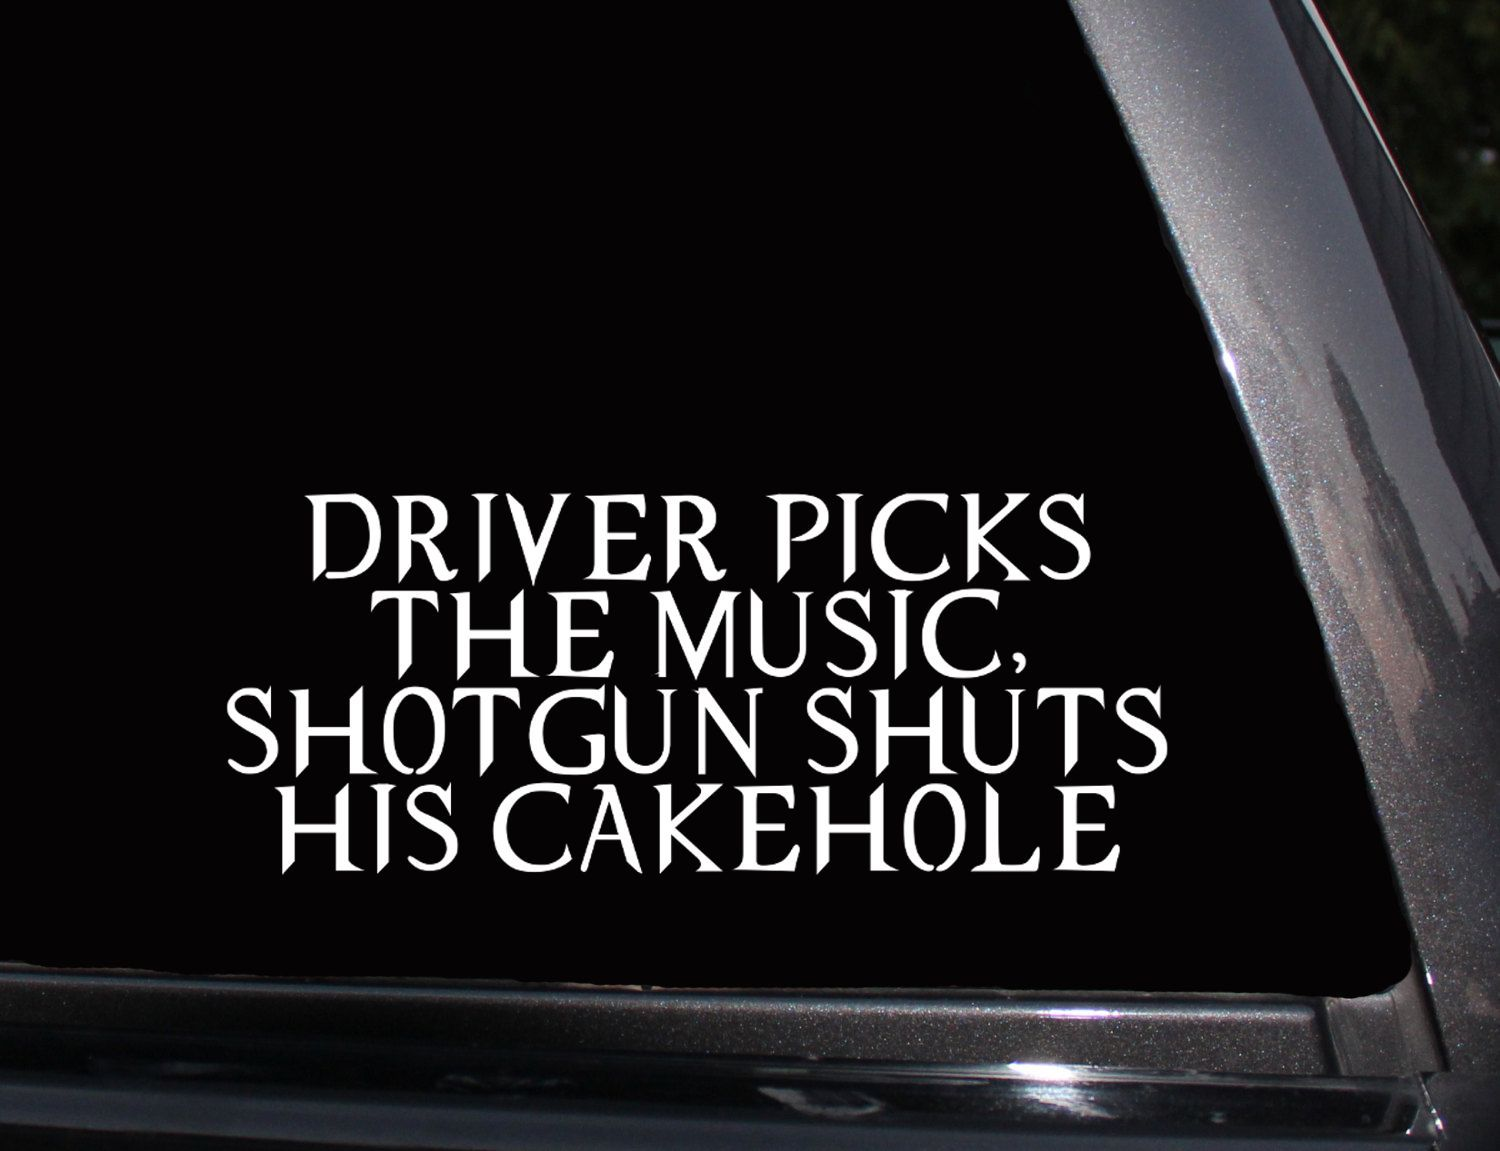 Supernatural Driver Picks The Music Vinyl Decal Phone Decal Laptop Decal Wall Decal Car Decal Family Car Decals Phone Decals Car Decals Vinyl [ 1151 x 1500 Pixel ]